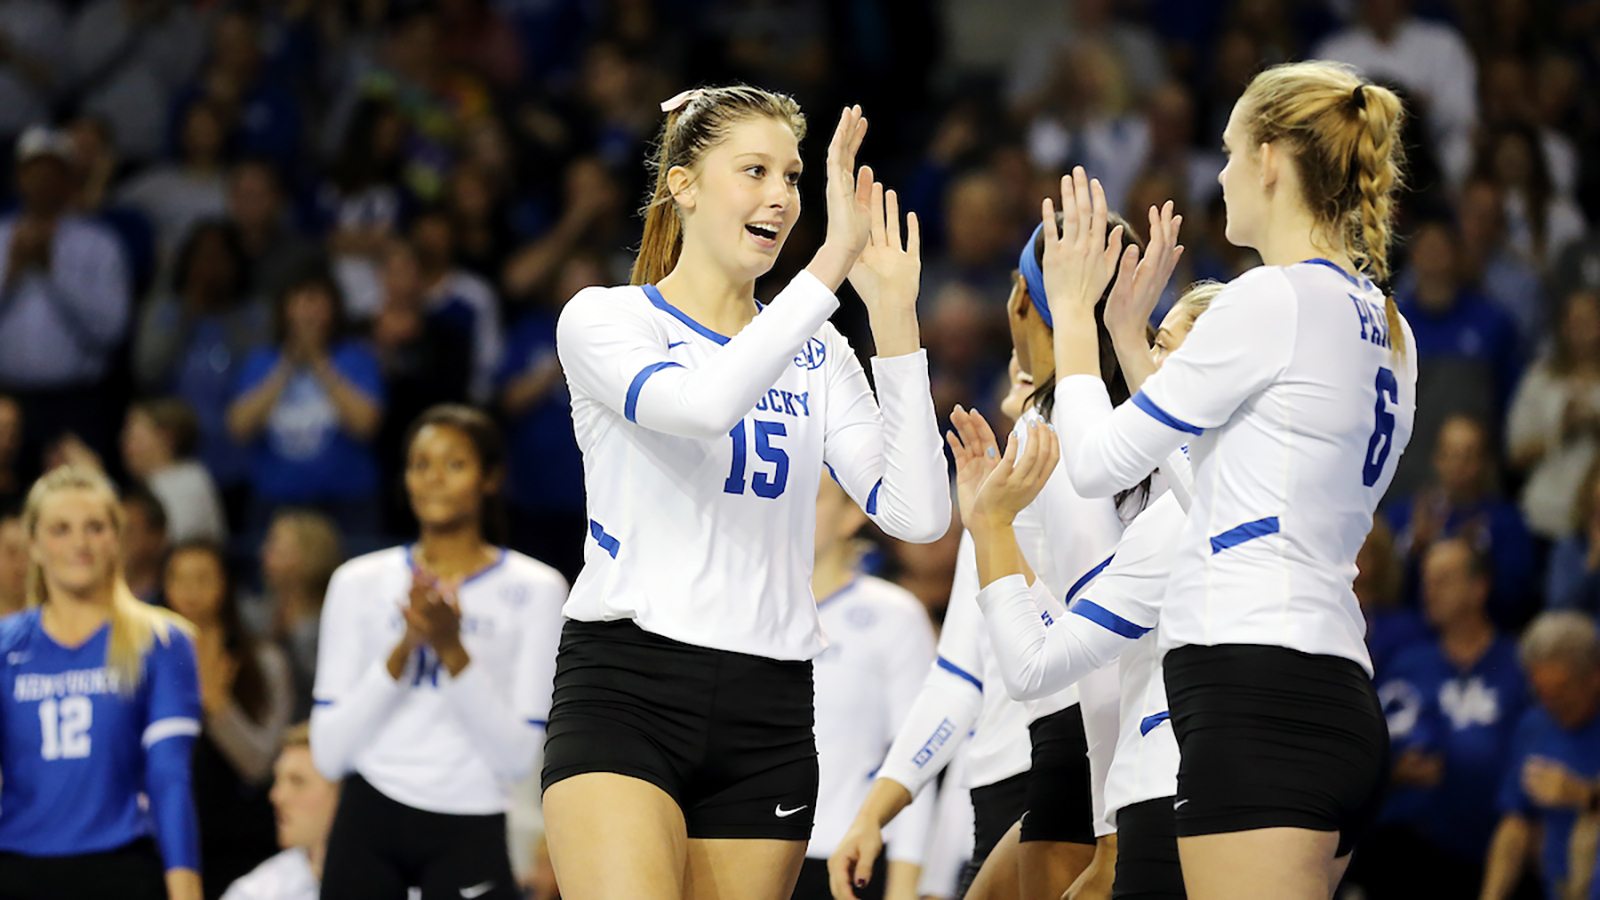 Brooke Morgan Volleyball University Of Kentucky Athletics